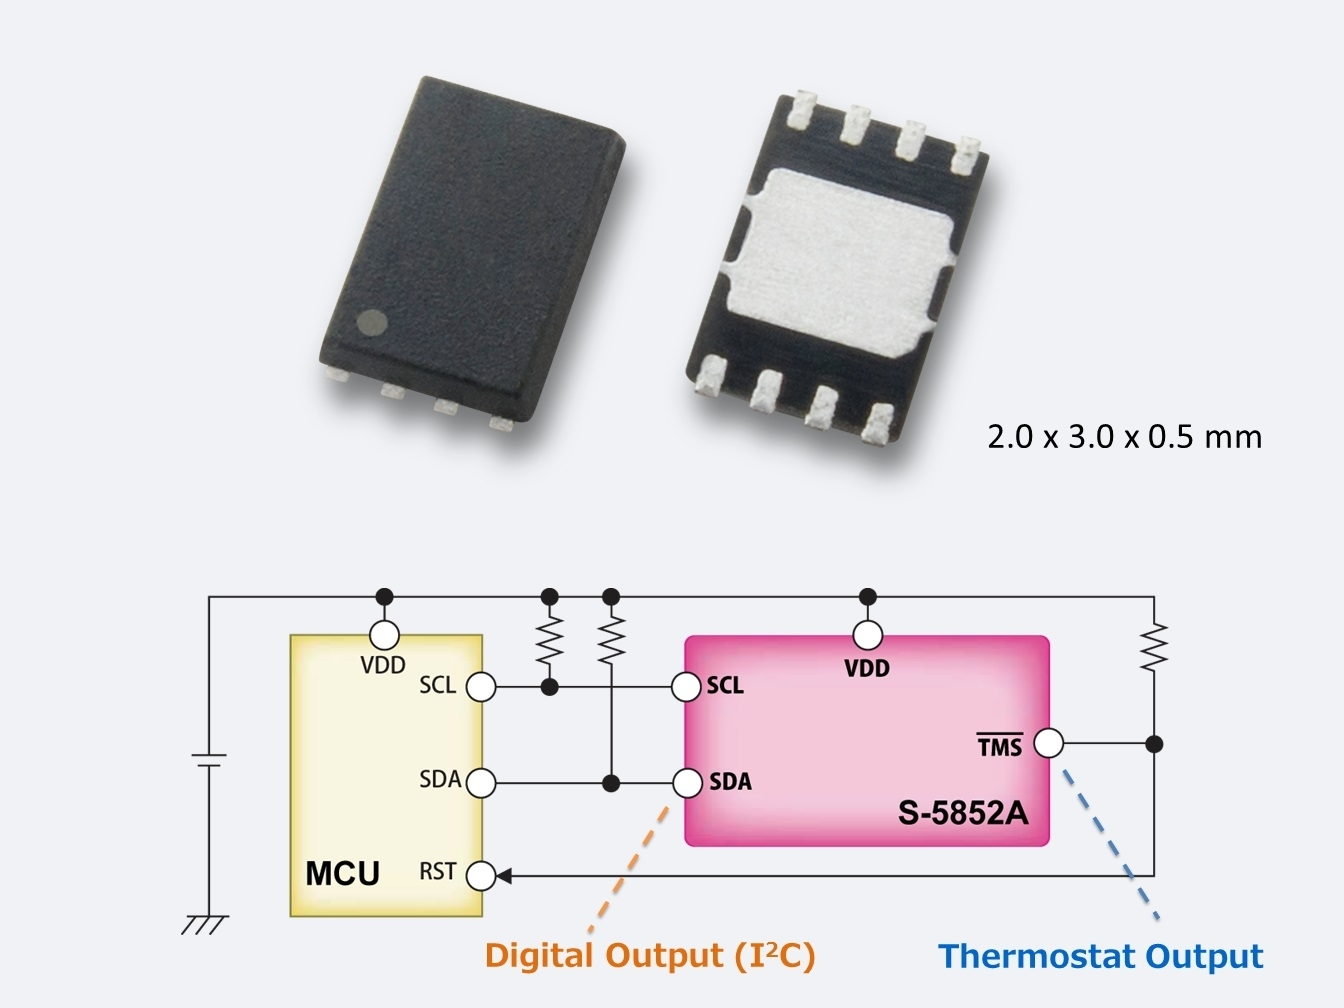 High Temp Sensors Temperature Sensing Circuit Seiko Instruments Sii Releases Accuracy Digital Sensor Ic With Thermostat Function Business Wire